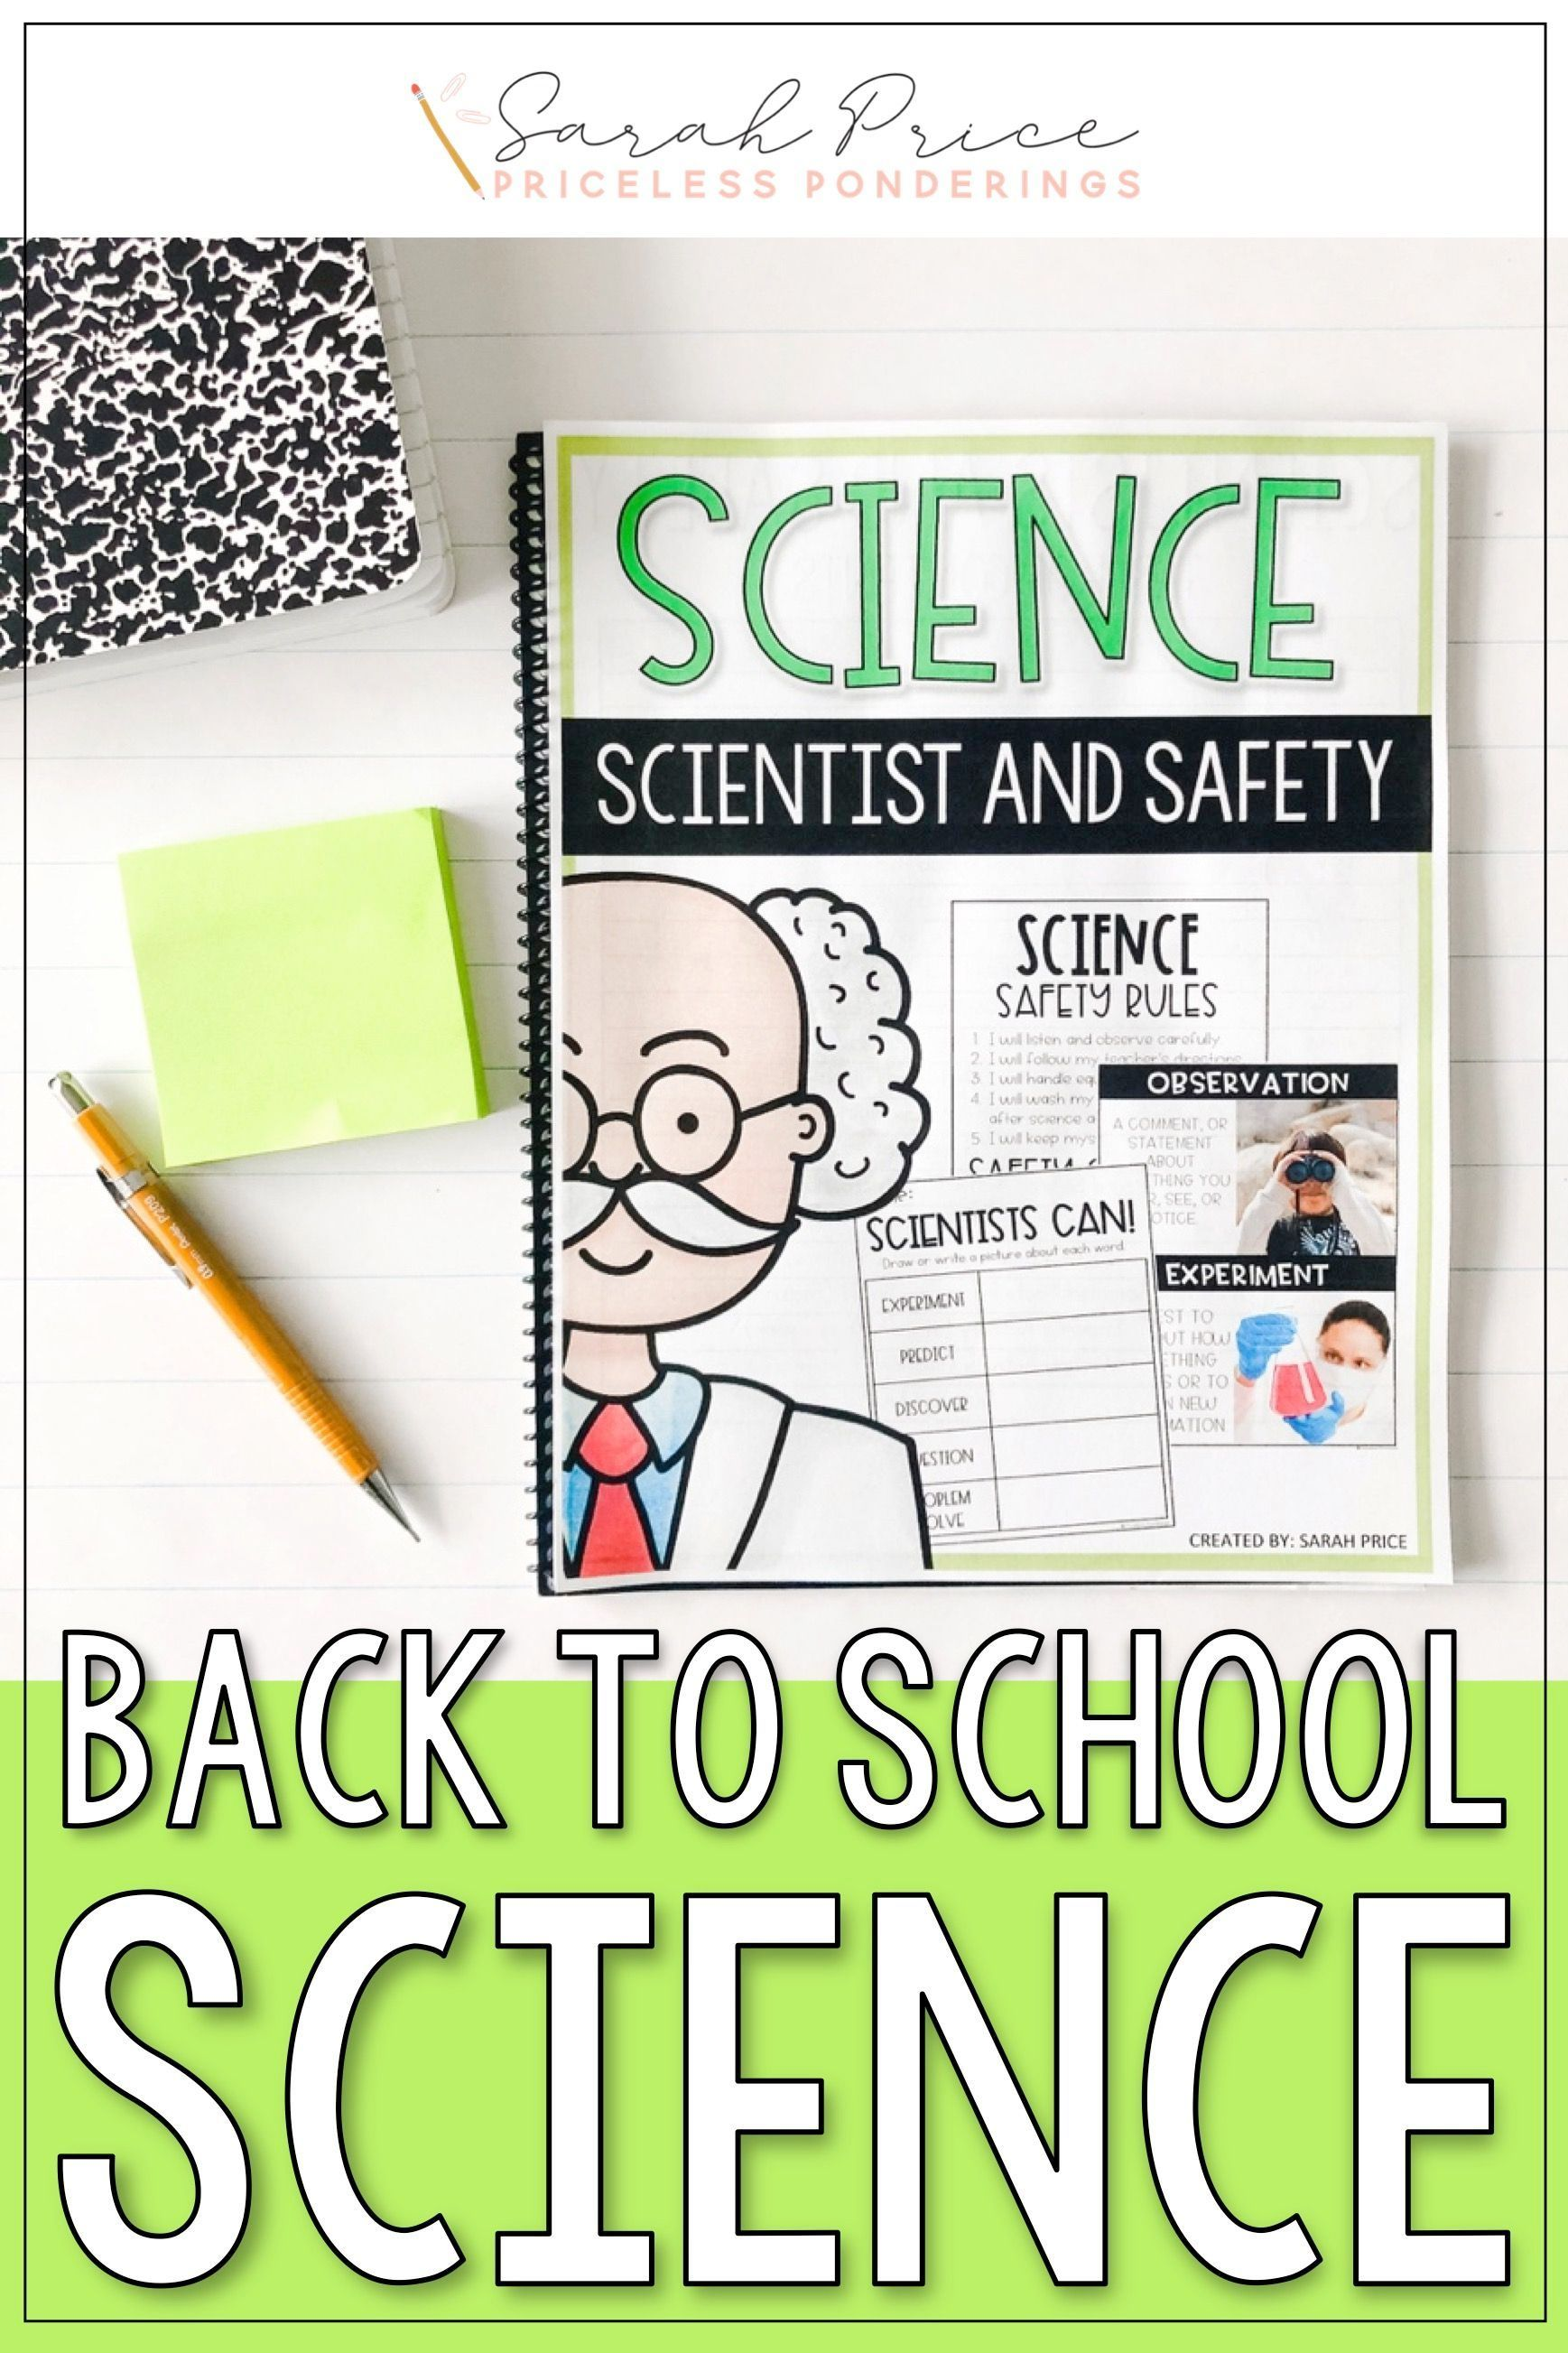 What Is A Scientist Science Safety And Science Tools Activities Science Tools Activities Science Tools Science Safety [ 2606 x 1737 Pixel ]